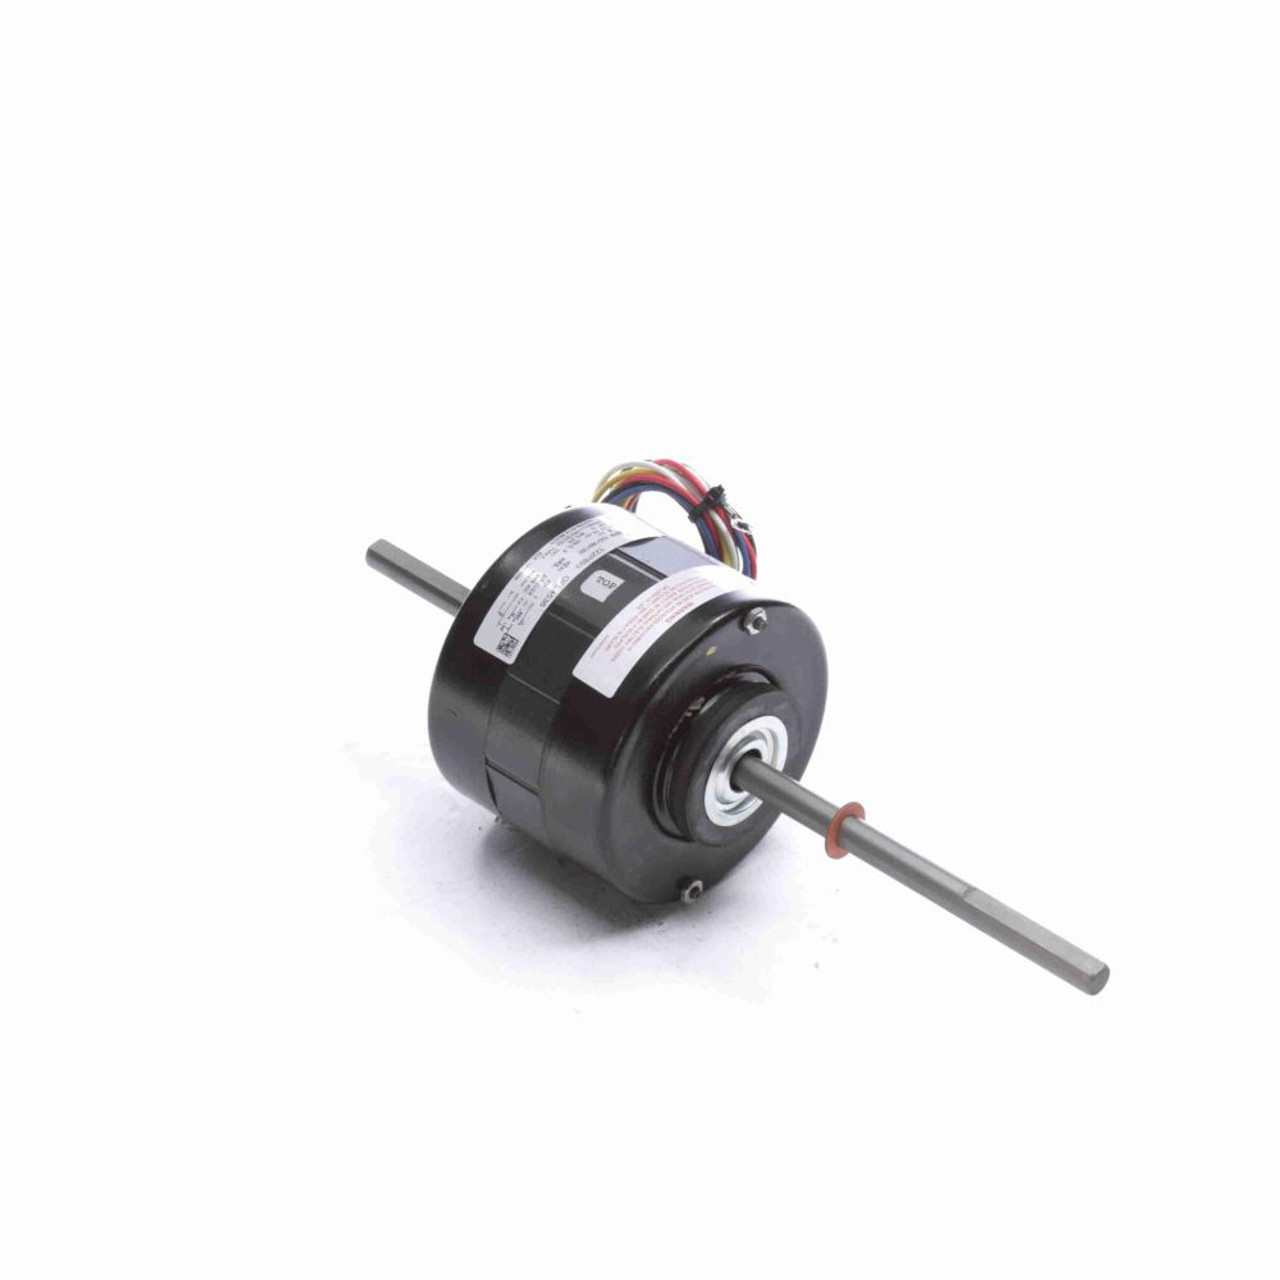 hight resolution of fedders 322p893 hvac motor 1 6 hp 1625 rpm 3 speed 115v century ofe4536